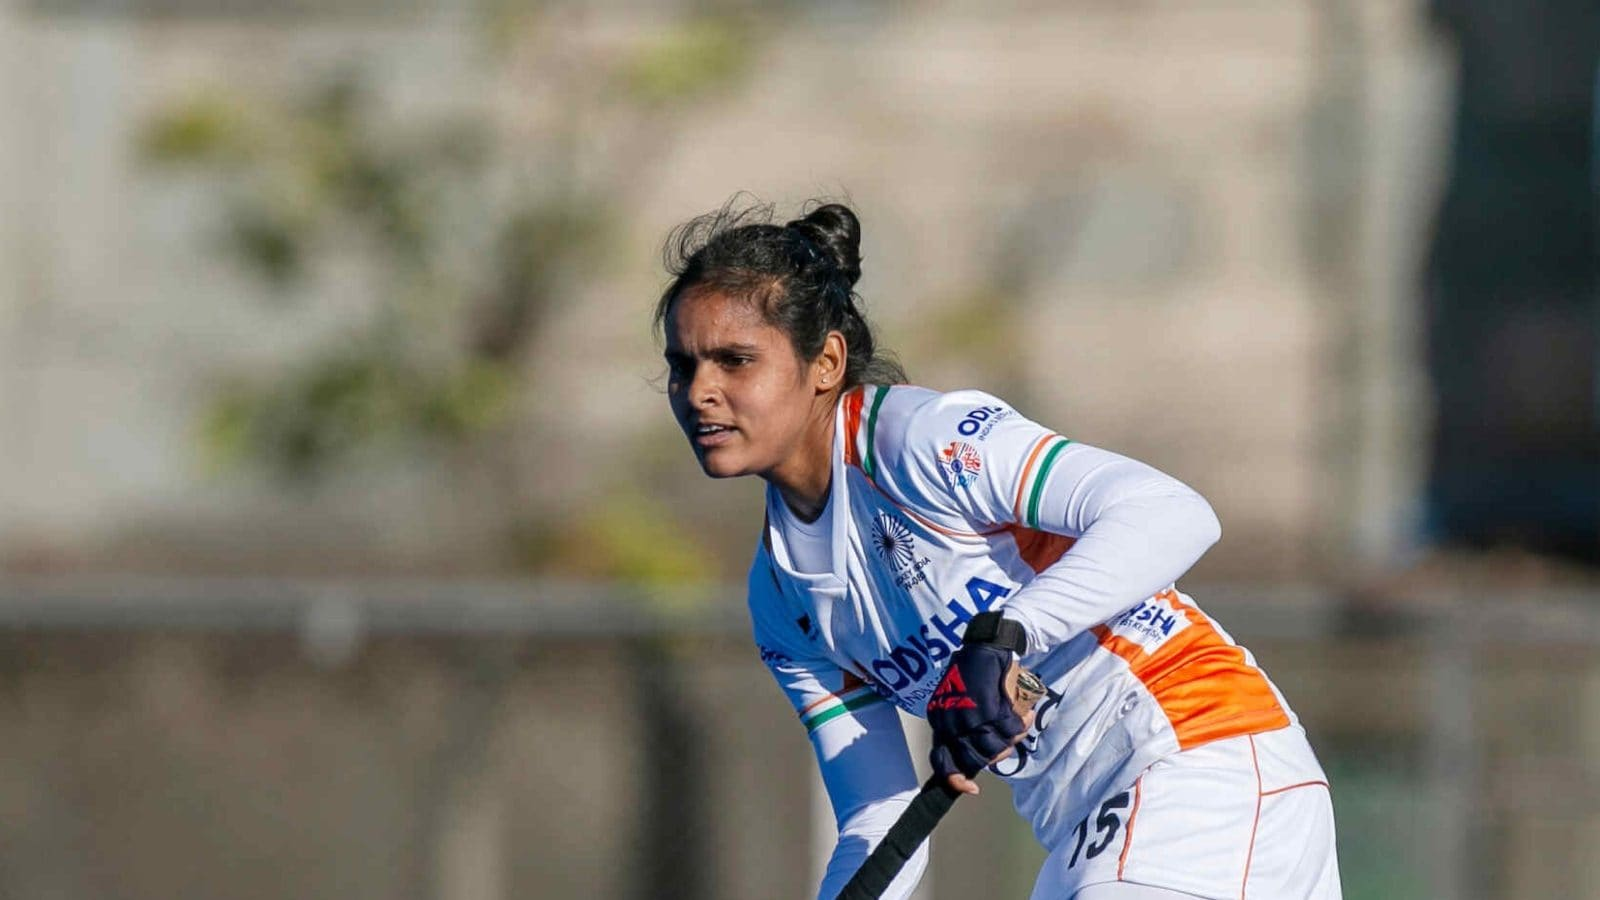 Mocked by Relatives, Tailor's Daughter Nisha Warsi Now Soars to Make a Mark in Hockey